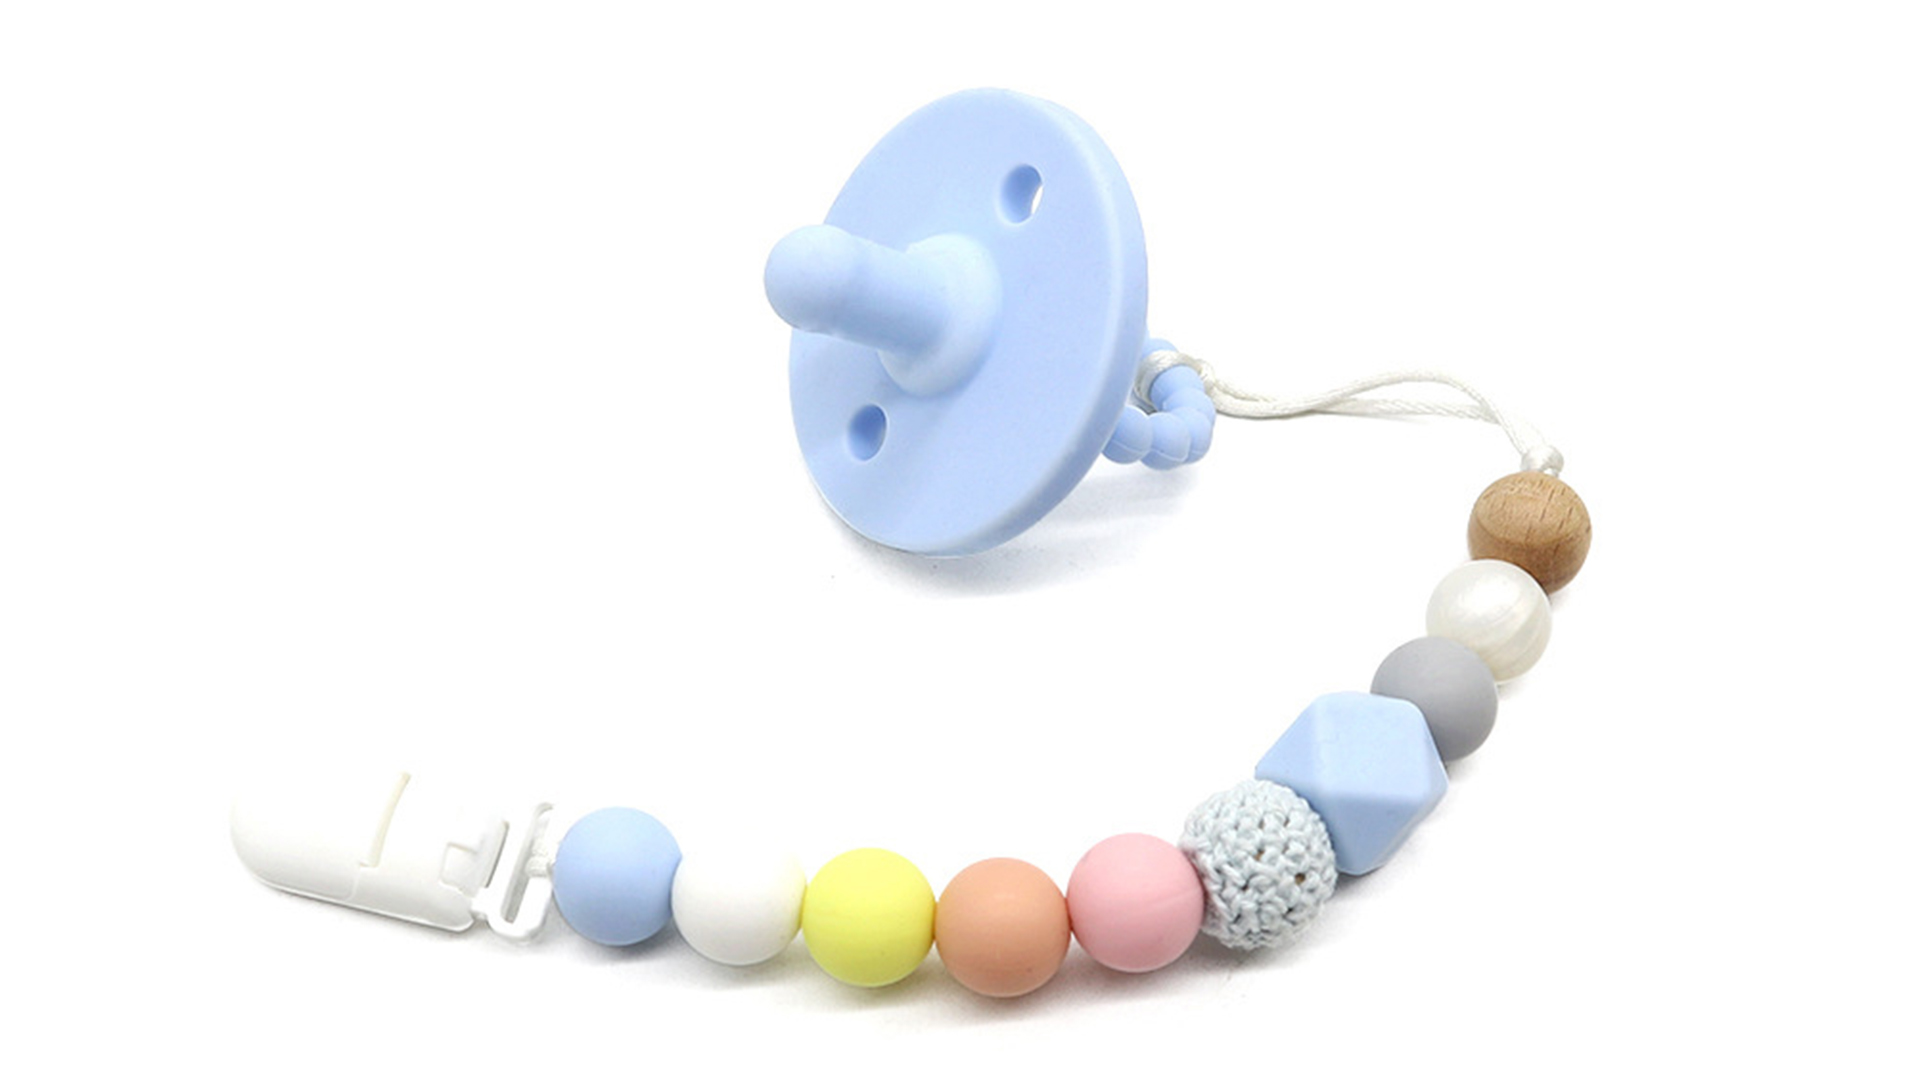 Silicone New-Neu-né Pacificateurs Dormir le mamelon dormant avec des perles de teether Poignée pliable DH-Silicone